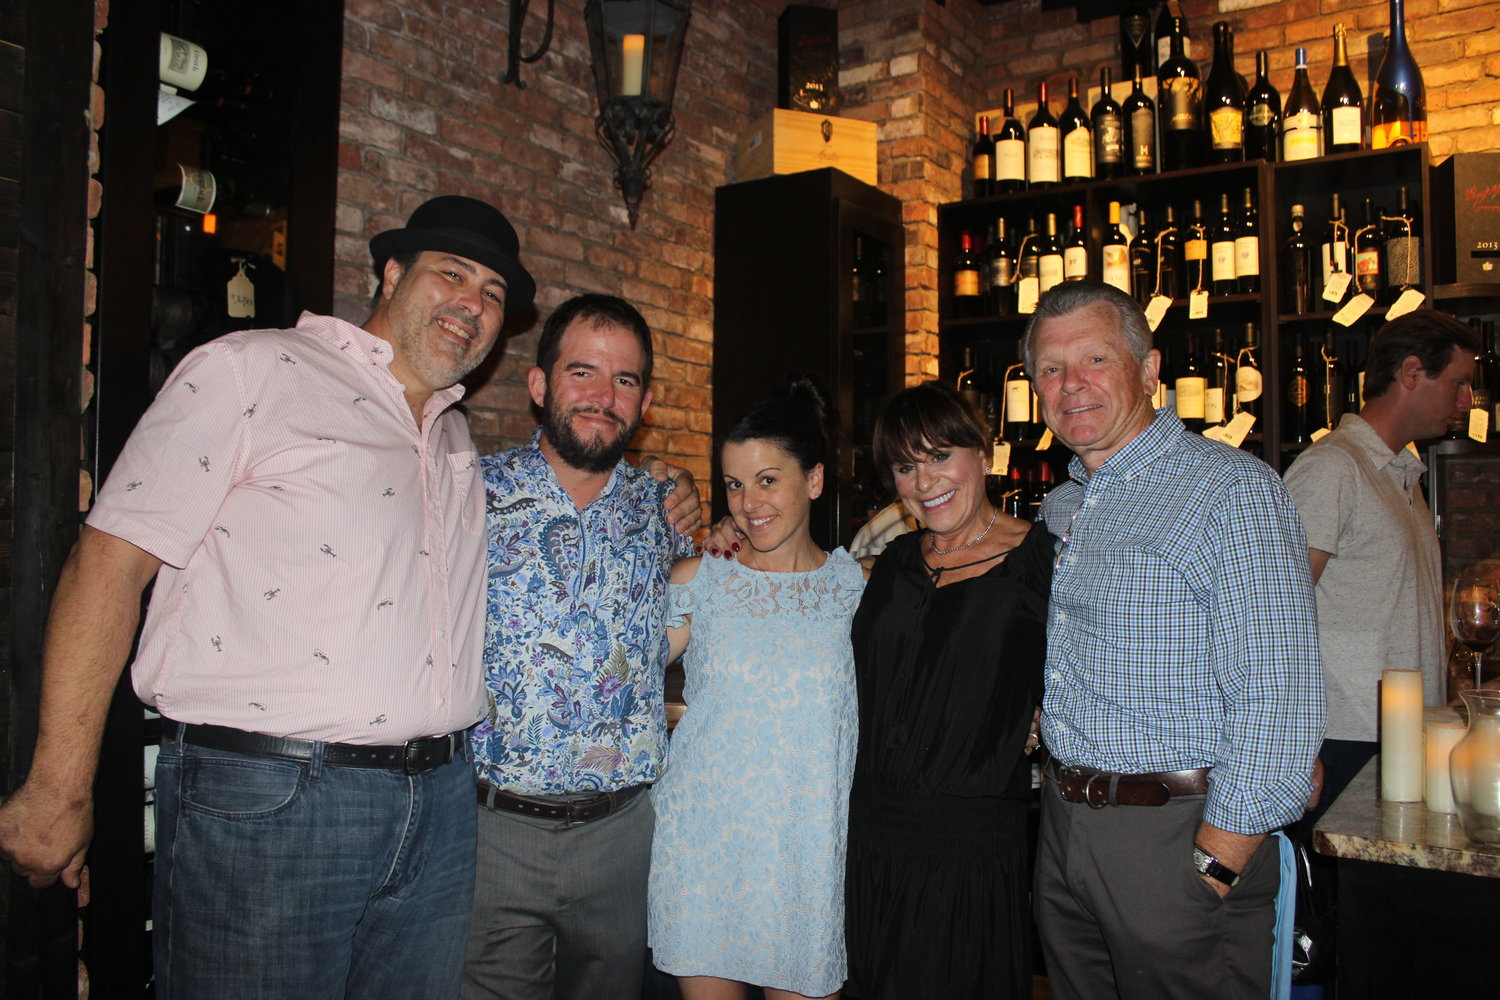 1.	(Left to right) Chef Jody Petronella poses with Coastal Wine Market owners, Steve and Shaun Lourie, and guests, Shirley and Dennis Mahoney.